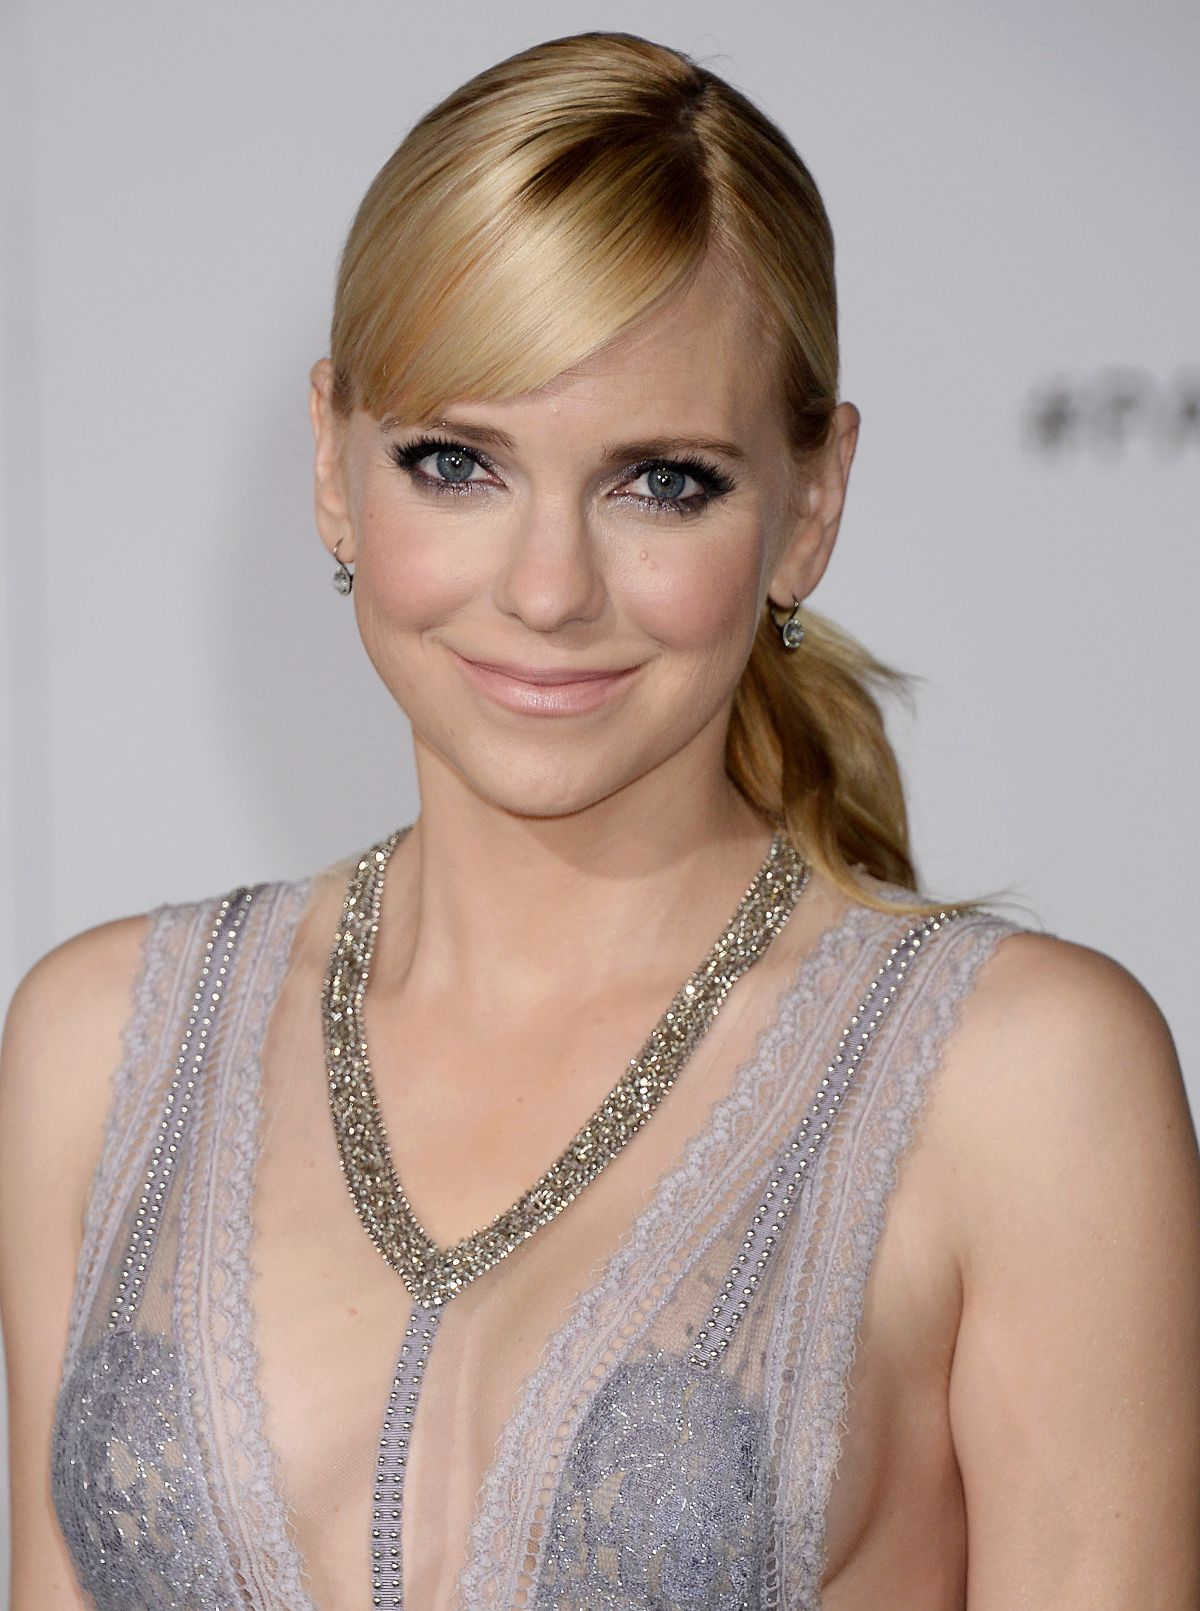 Sexy, thanks anna faris nuda Lovely! Great